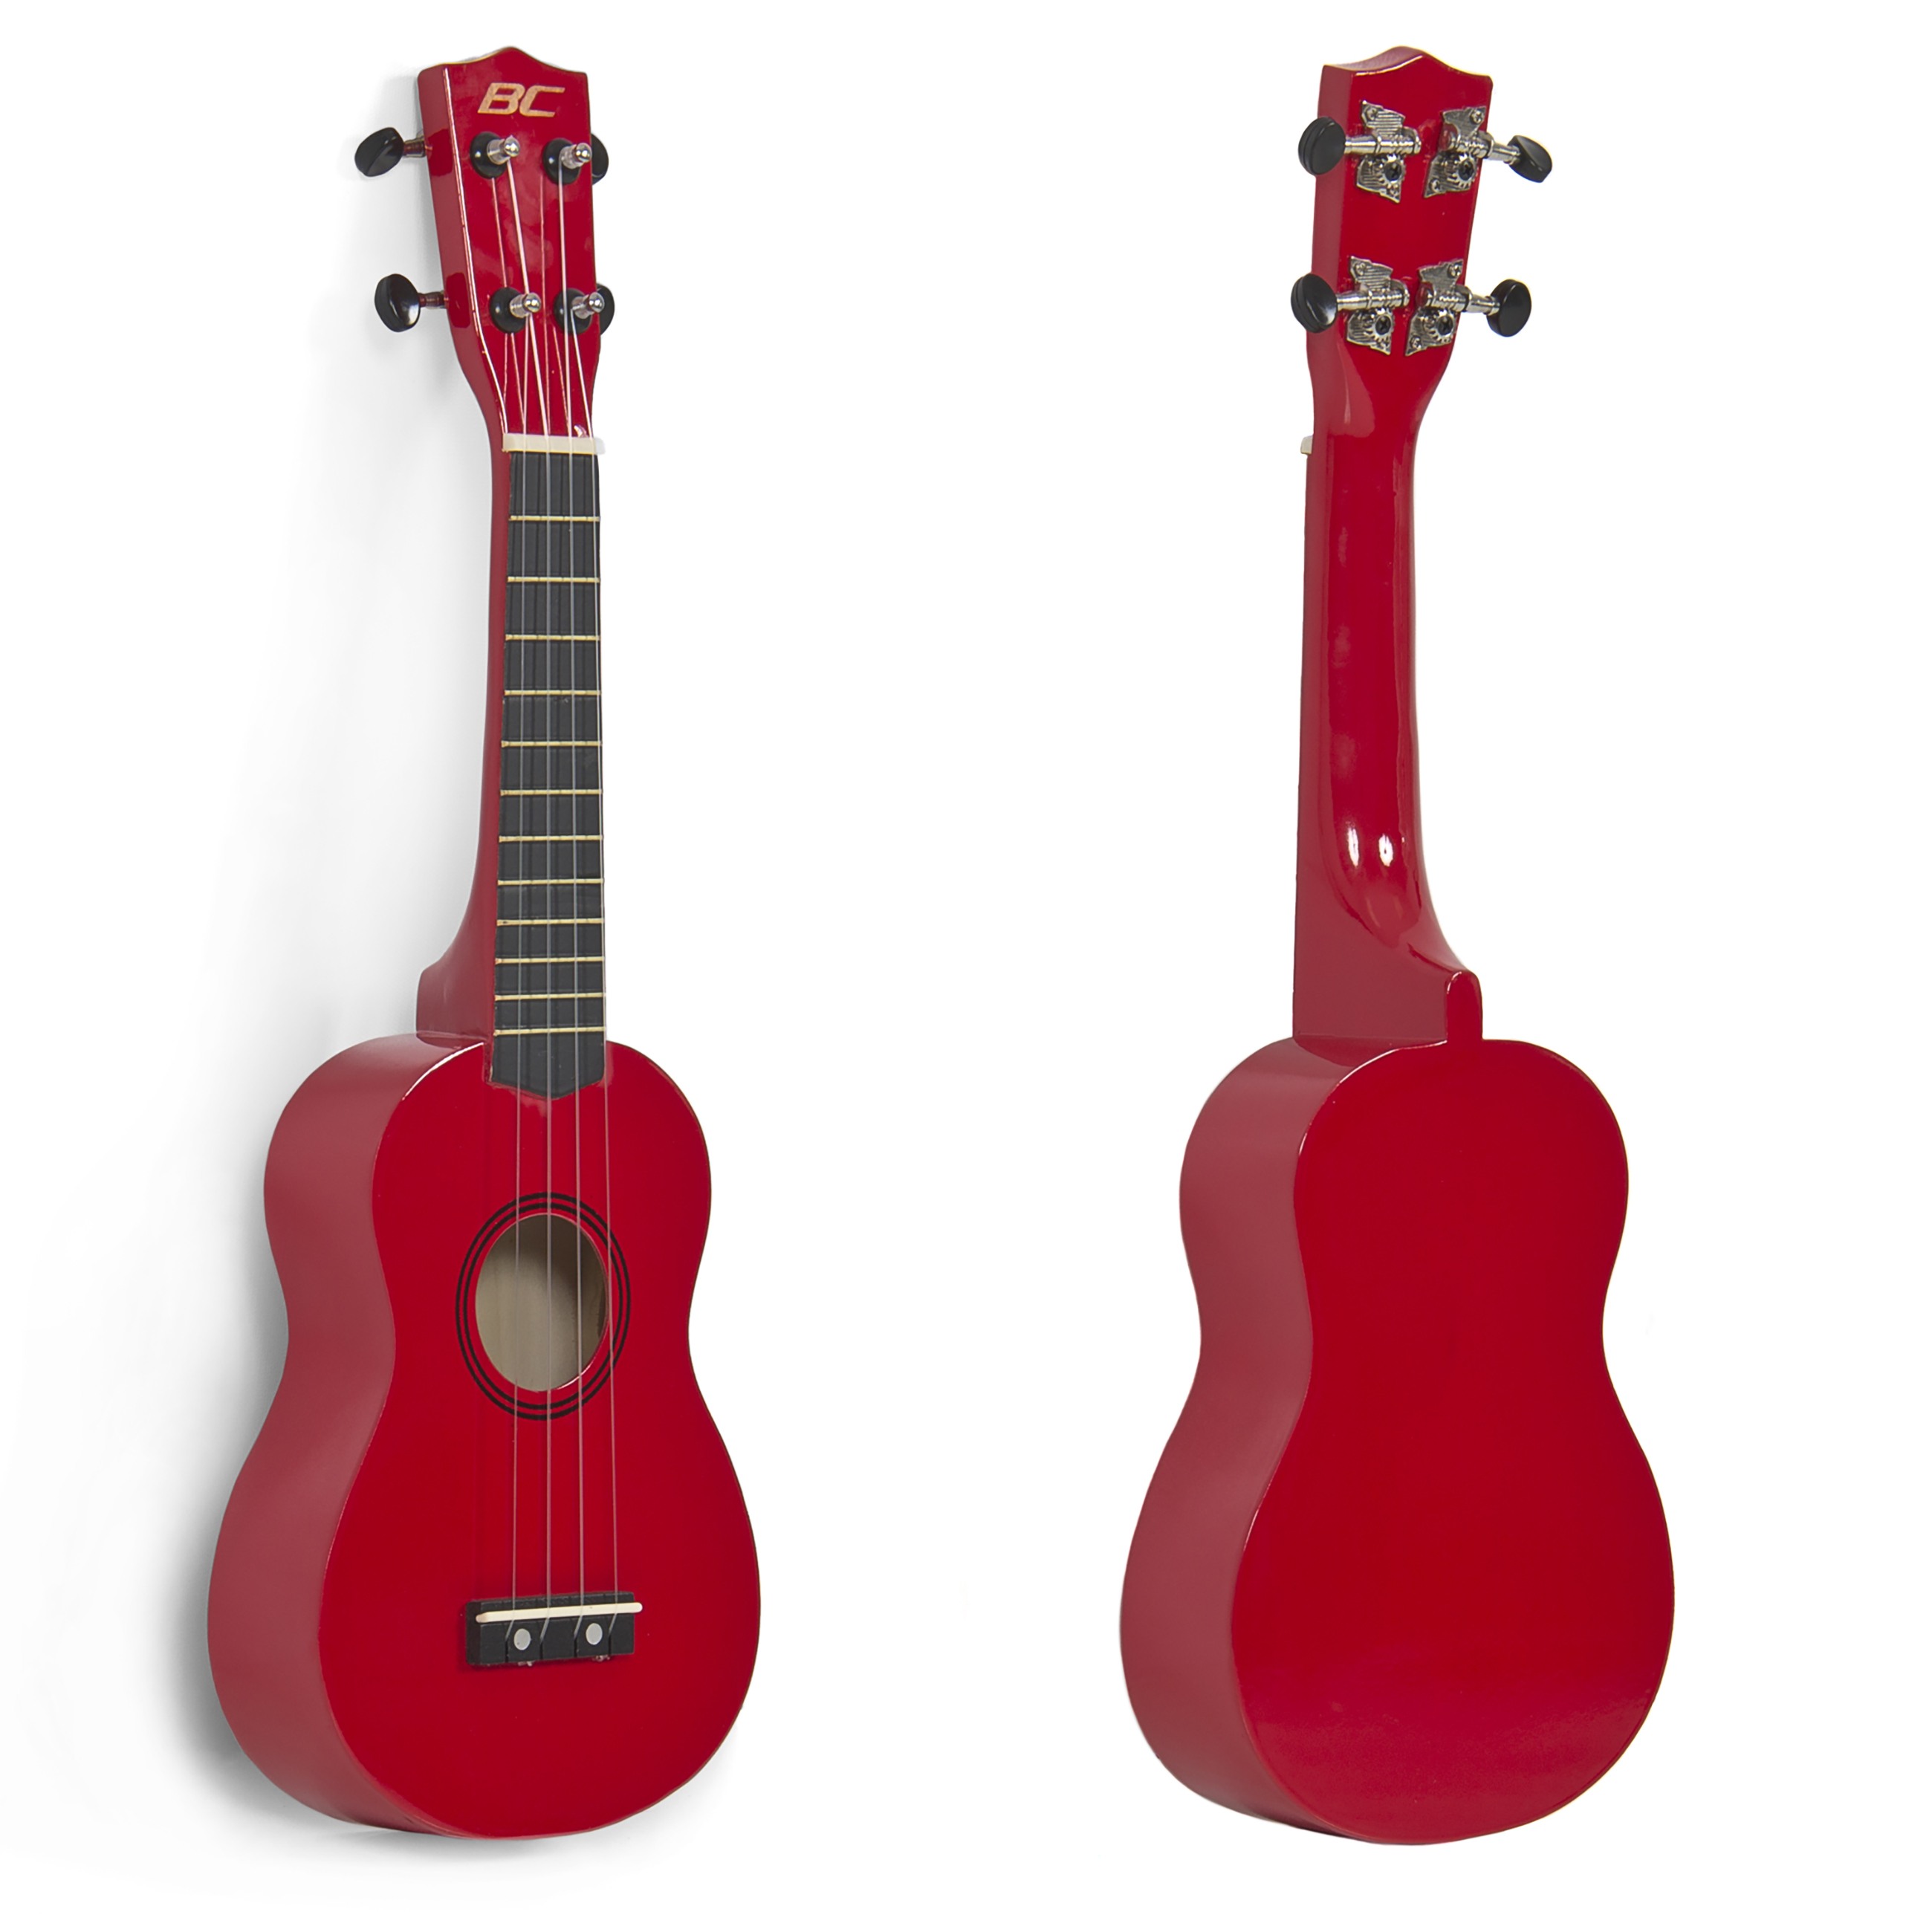 Best Choice Products 21in Soprano Ukulele w/ Rosewood Fingerboard and Bridge - Red